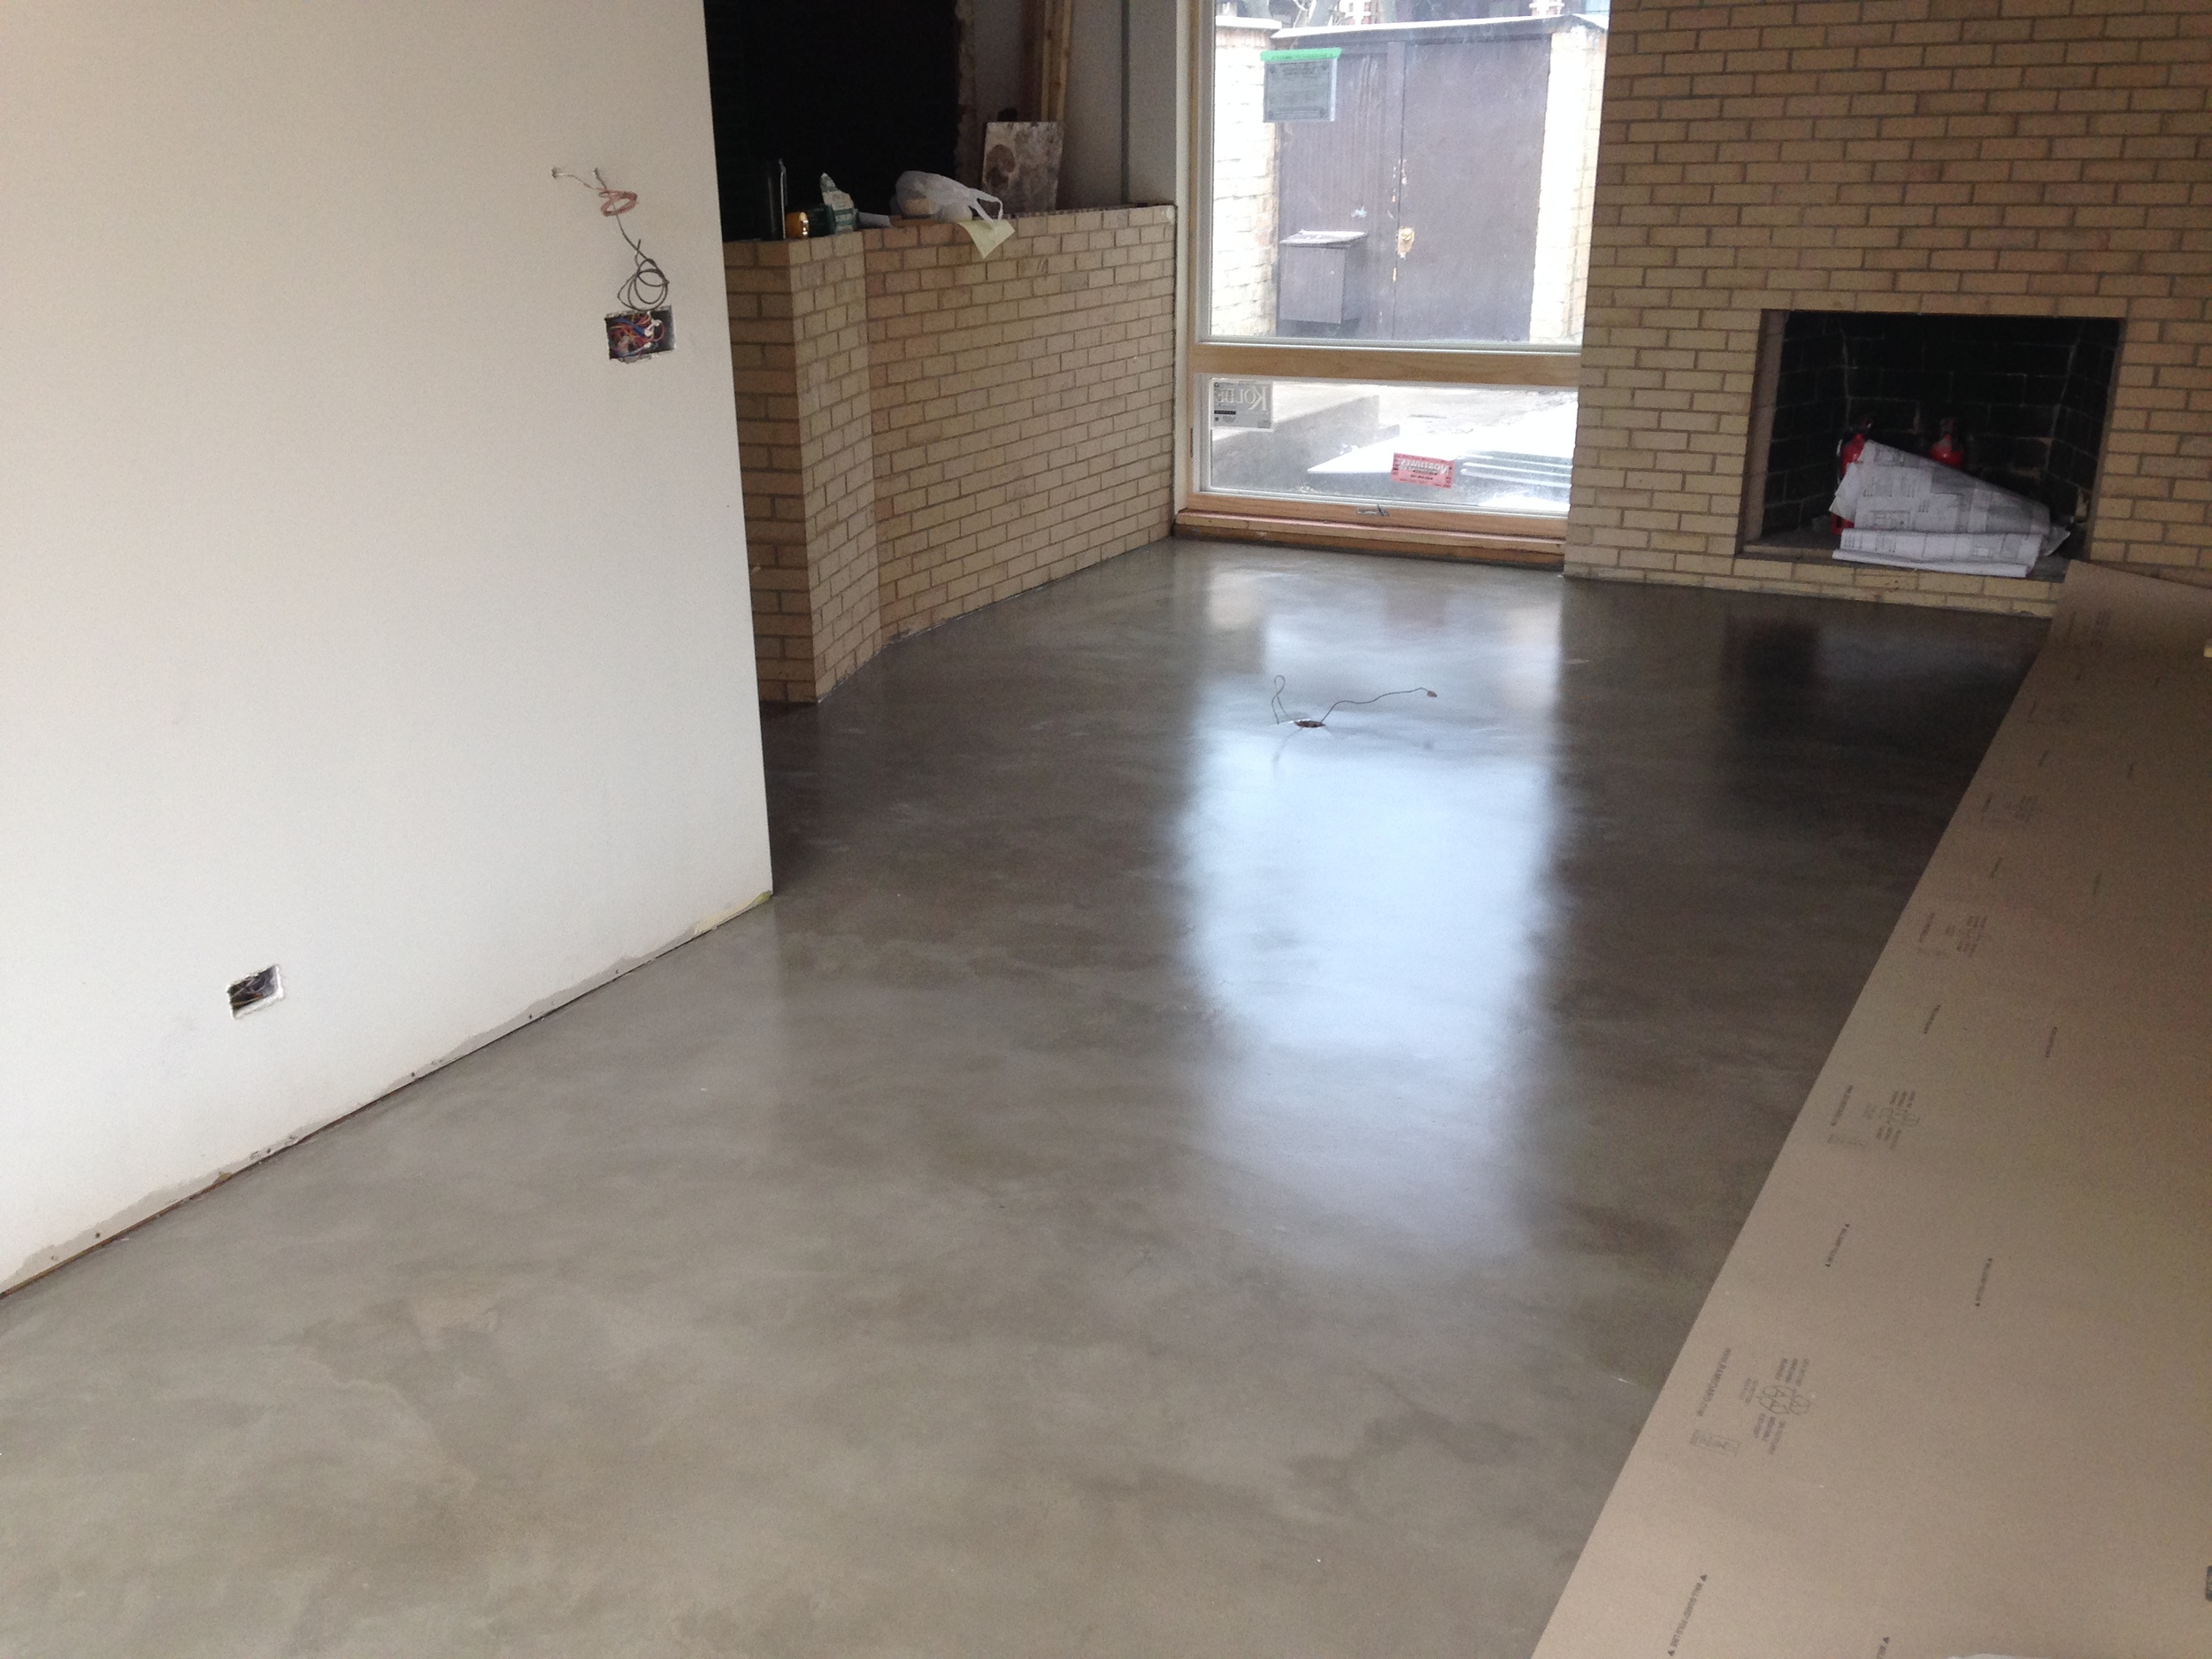 Polished concrete in the Living Room